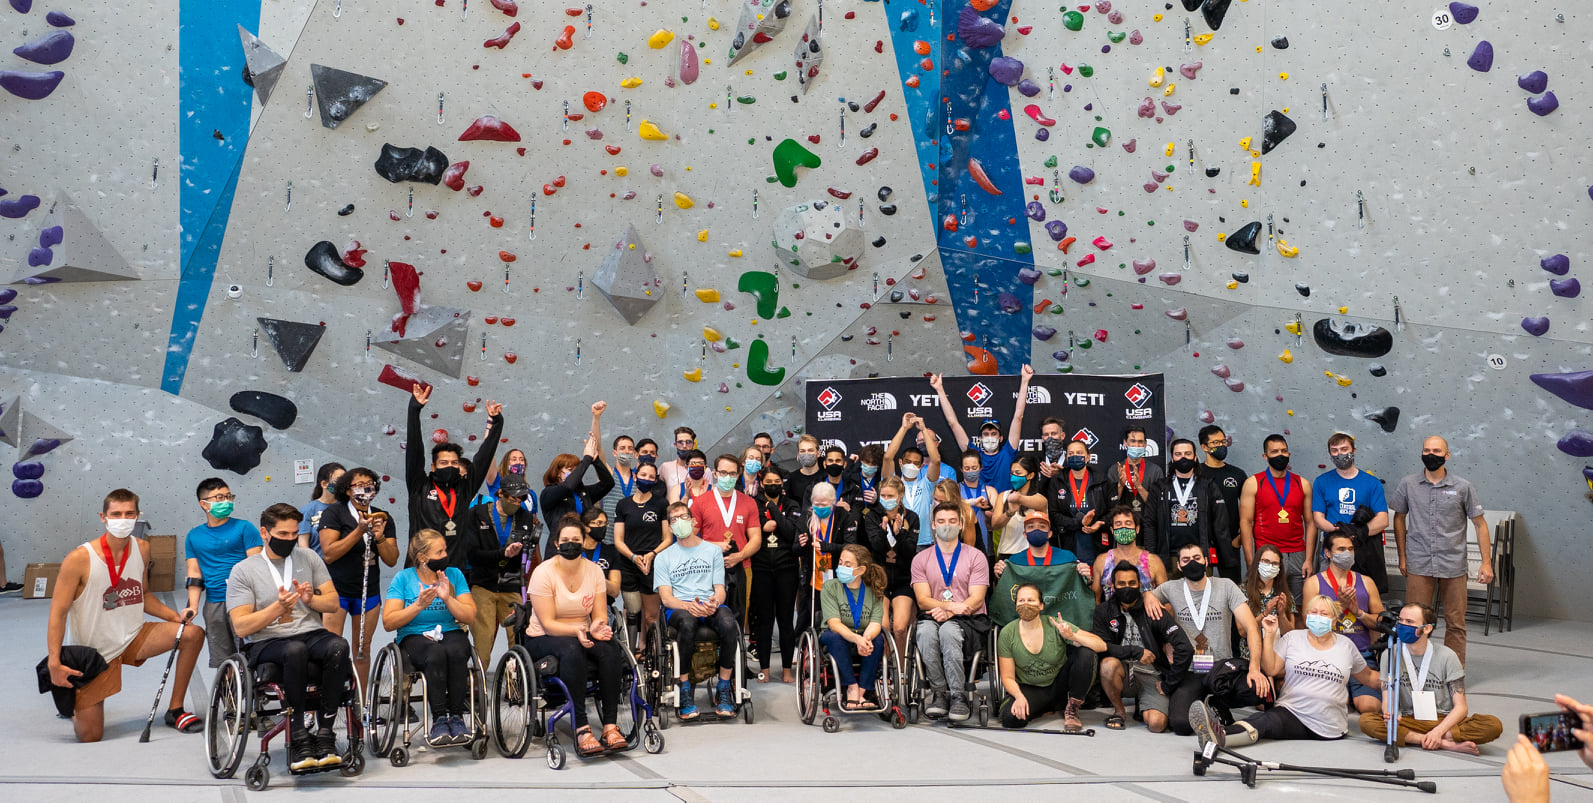 Paraplegic group photo in front of climbing wall